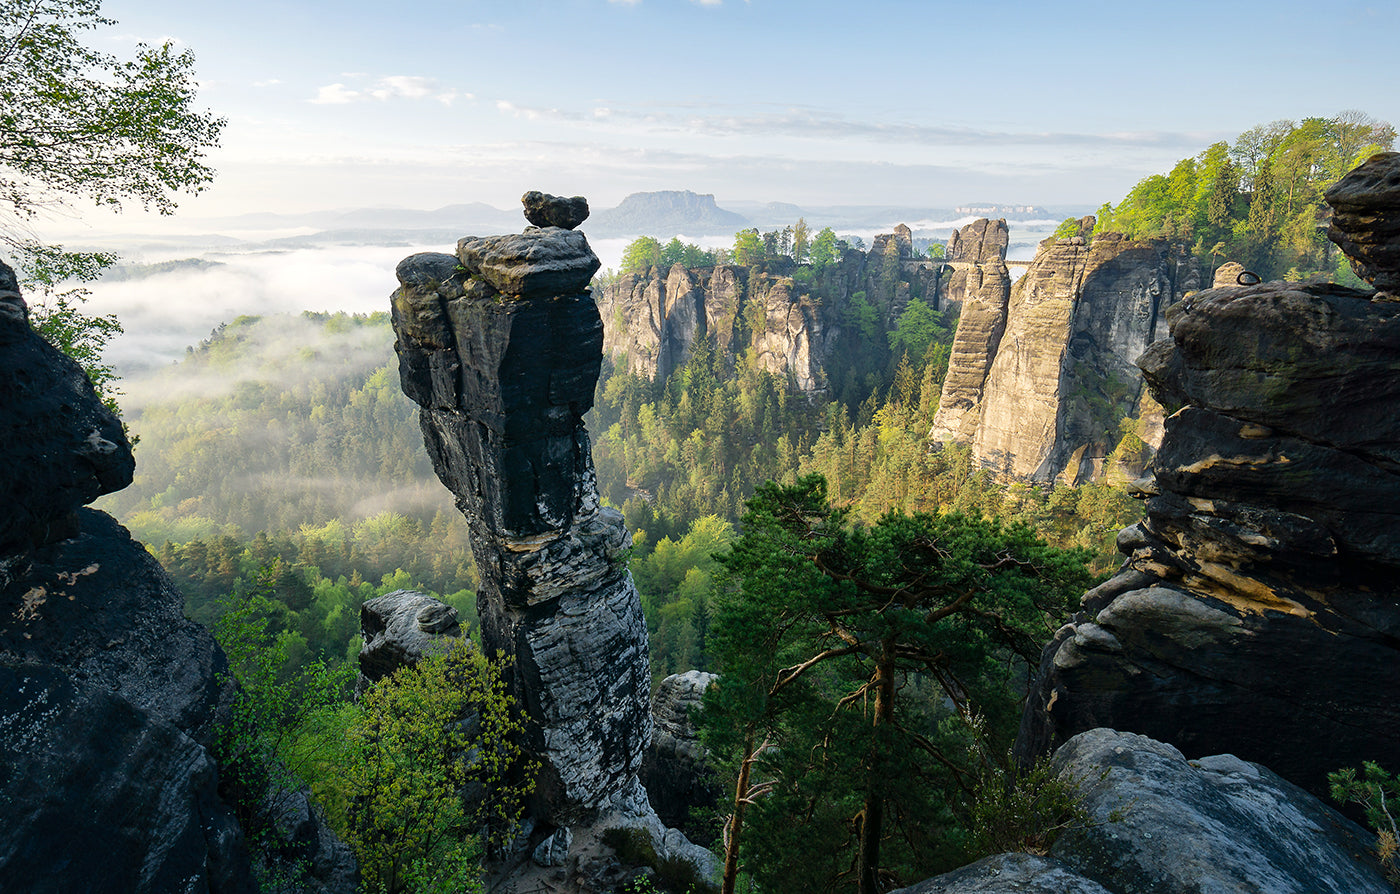 Sandstone mountains along the Malerweg in the eastern part of German in Saxony province. (Photo: Philipp Zieger)